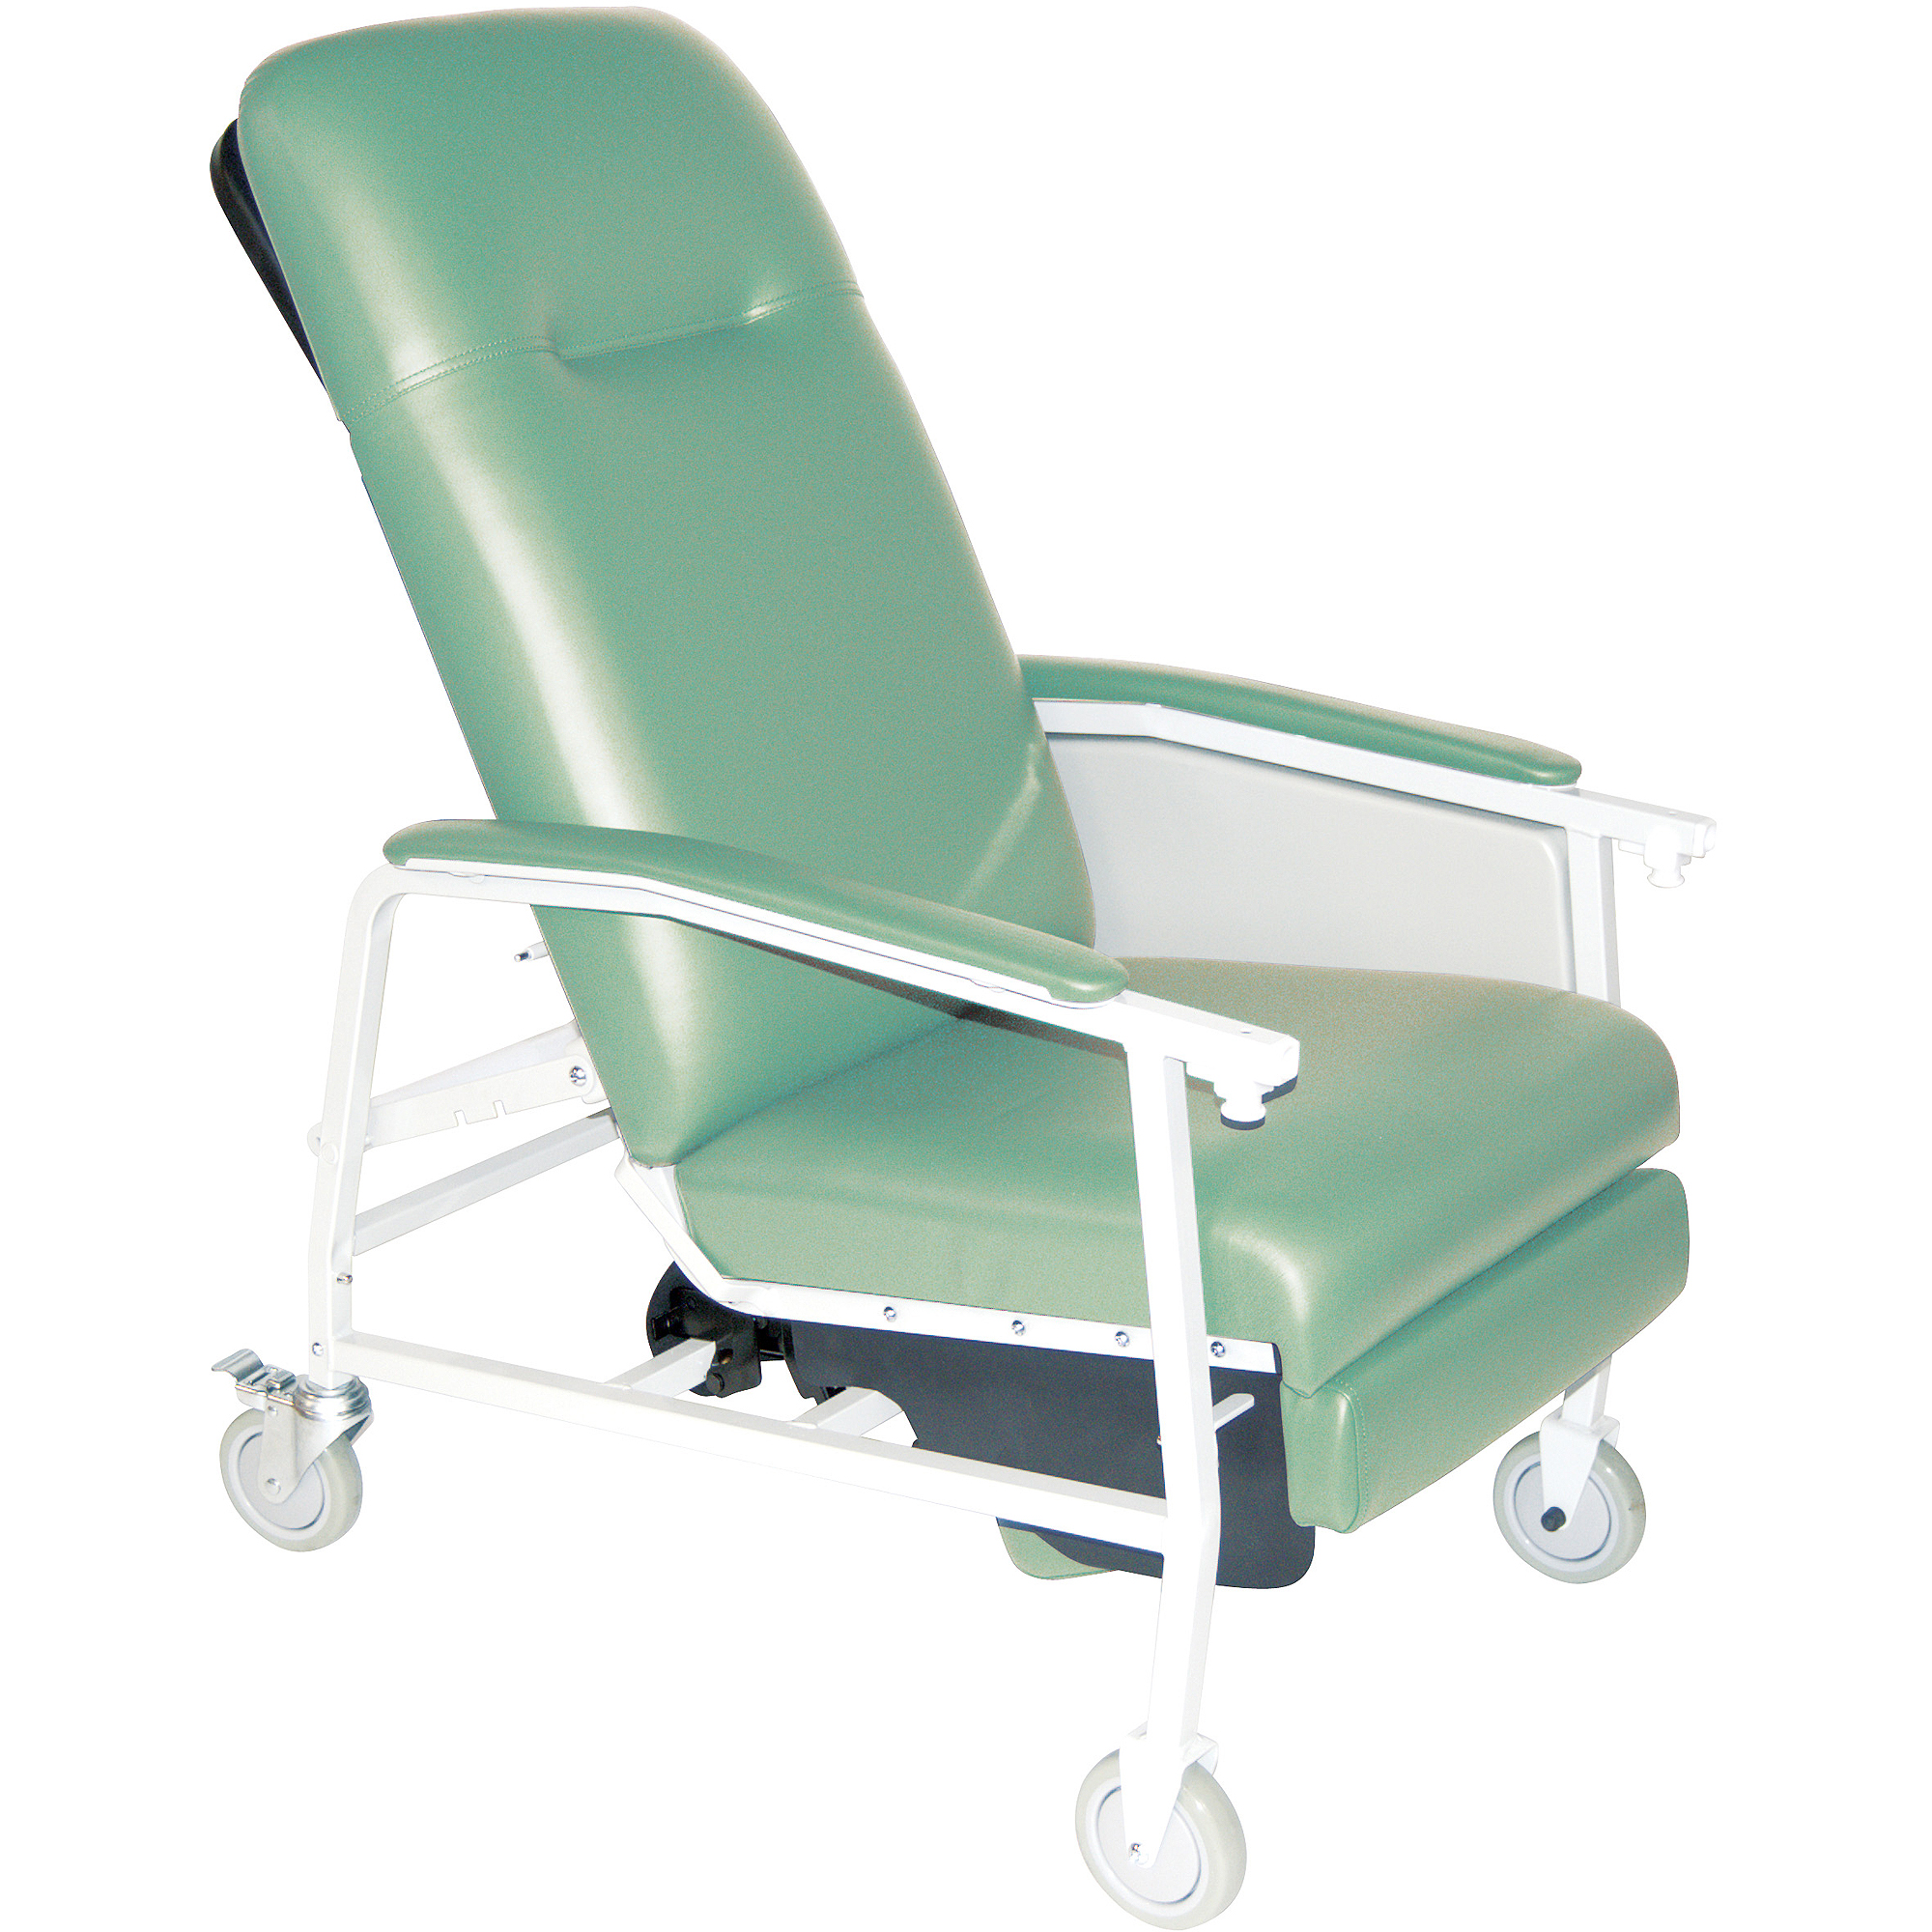 Drive Medical 3 Position Geri Chair Recliner Jade Image 4 of 4  sc 1 st  Walmart & Drive Medical 3 Position Geri Chair Recliner Jade - Walmart.com islam-shia.org